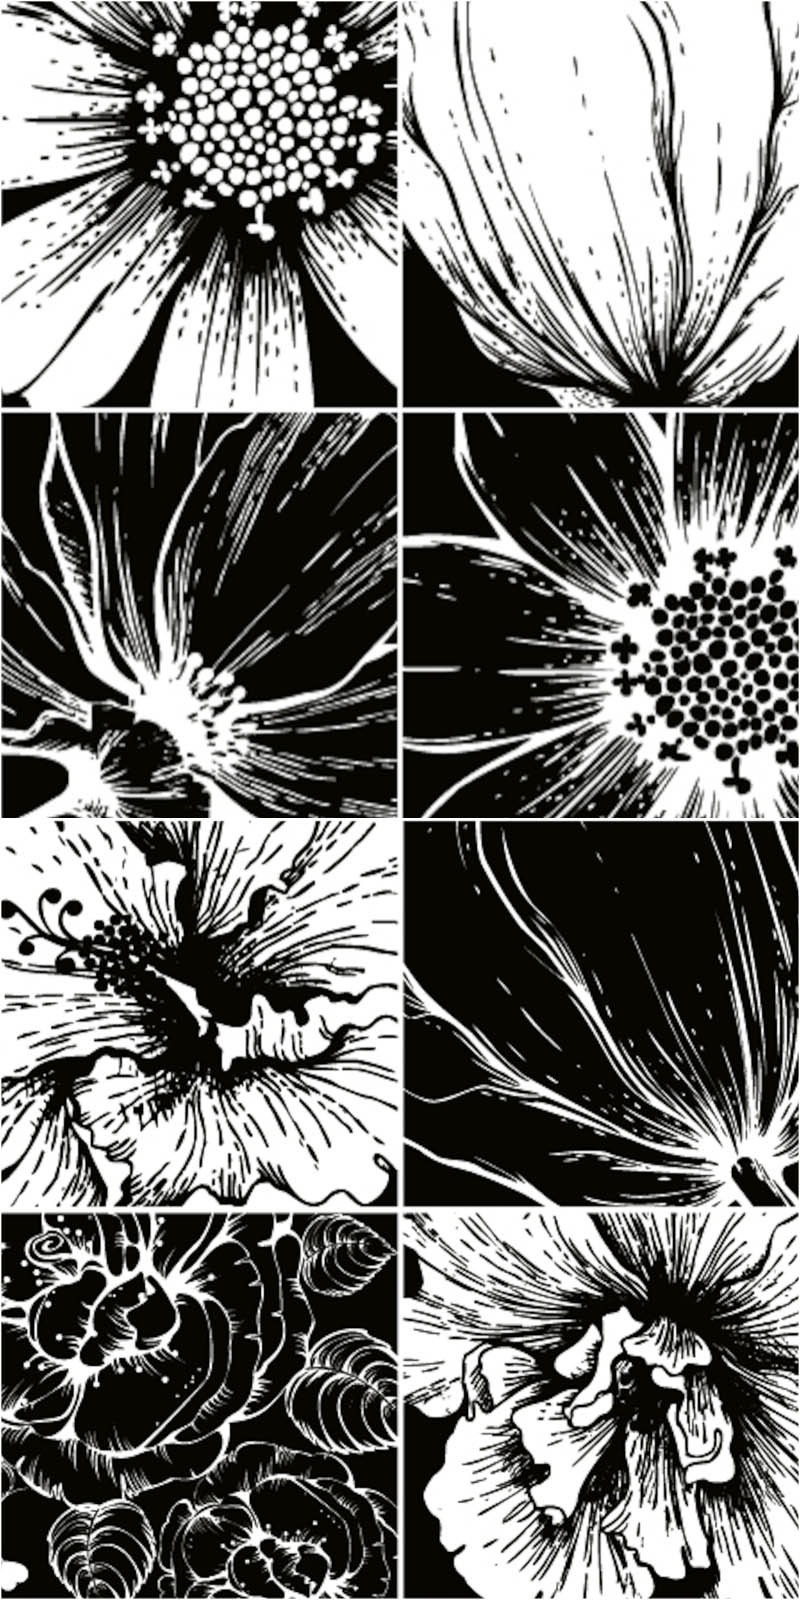 20 Flower Art Black And White Vector Images - Black and ...